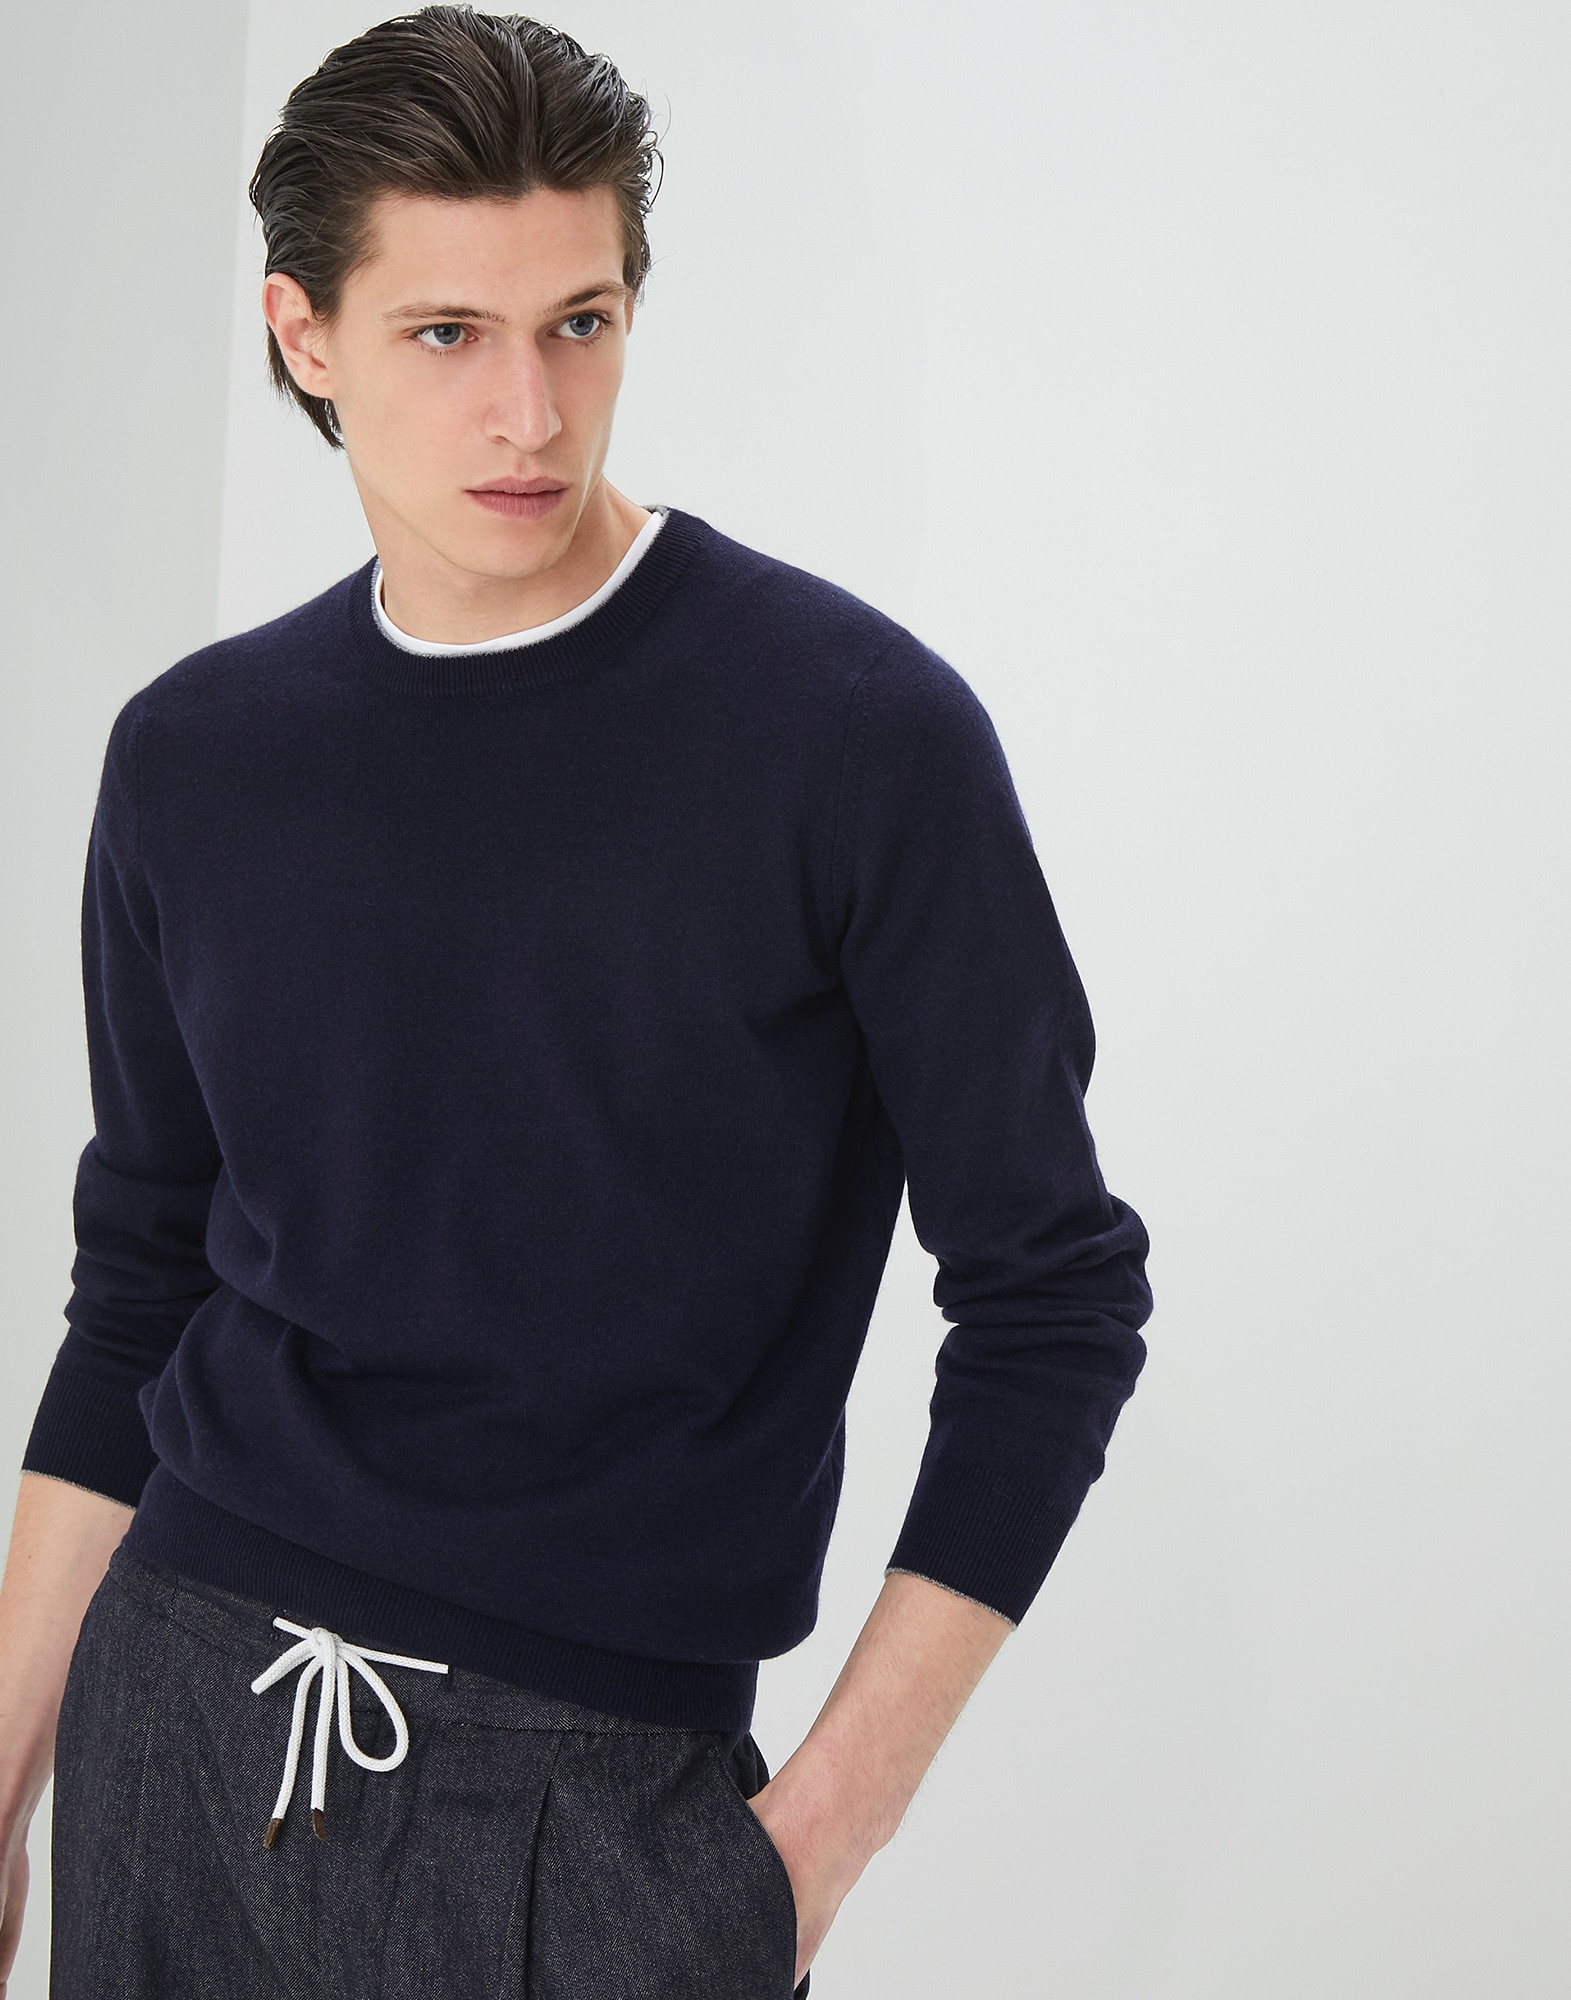 Crewneck Sweater Navy Blue Man 1 - Brunello Cucinelli